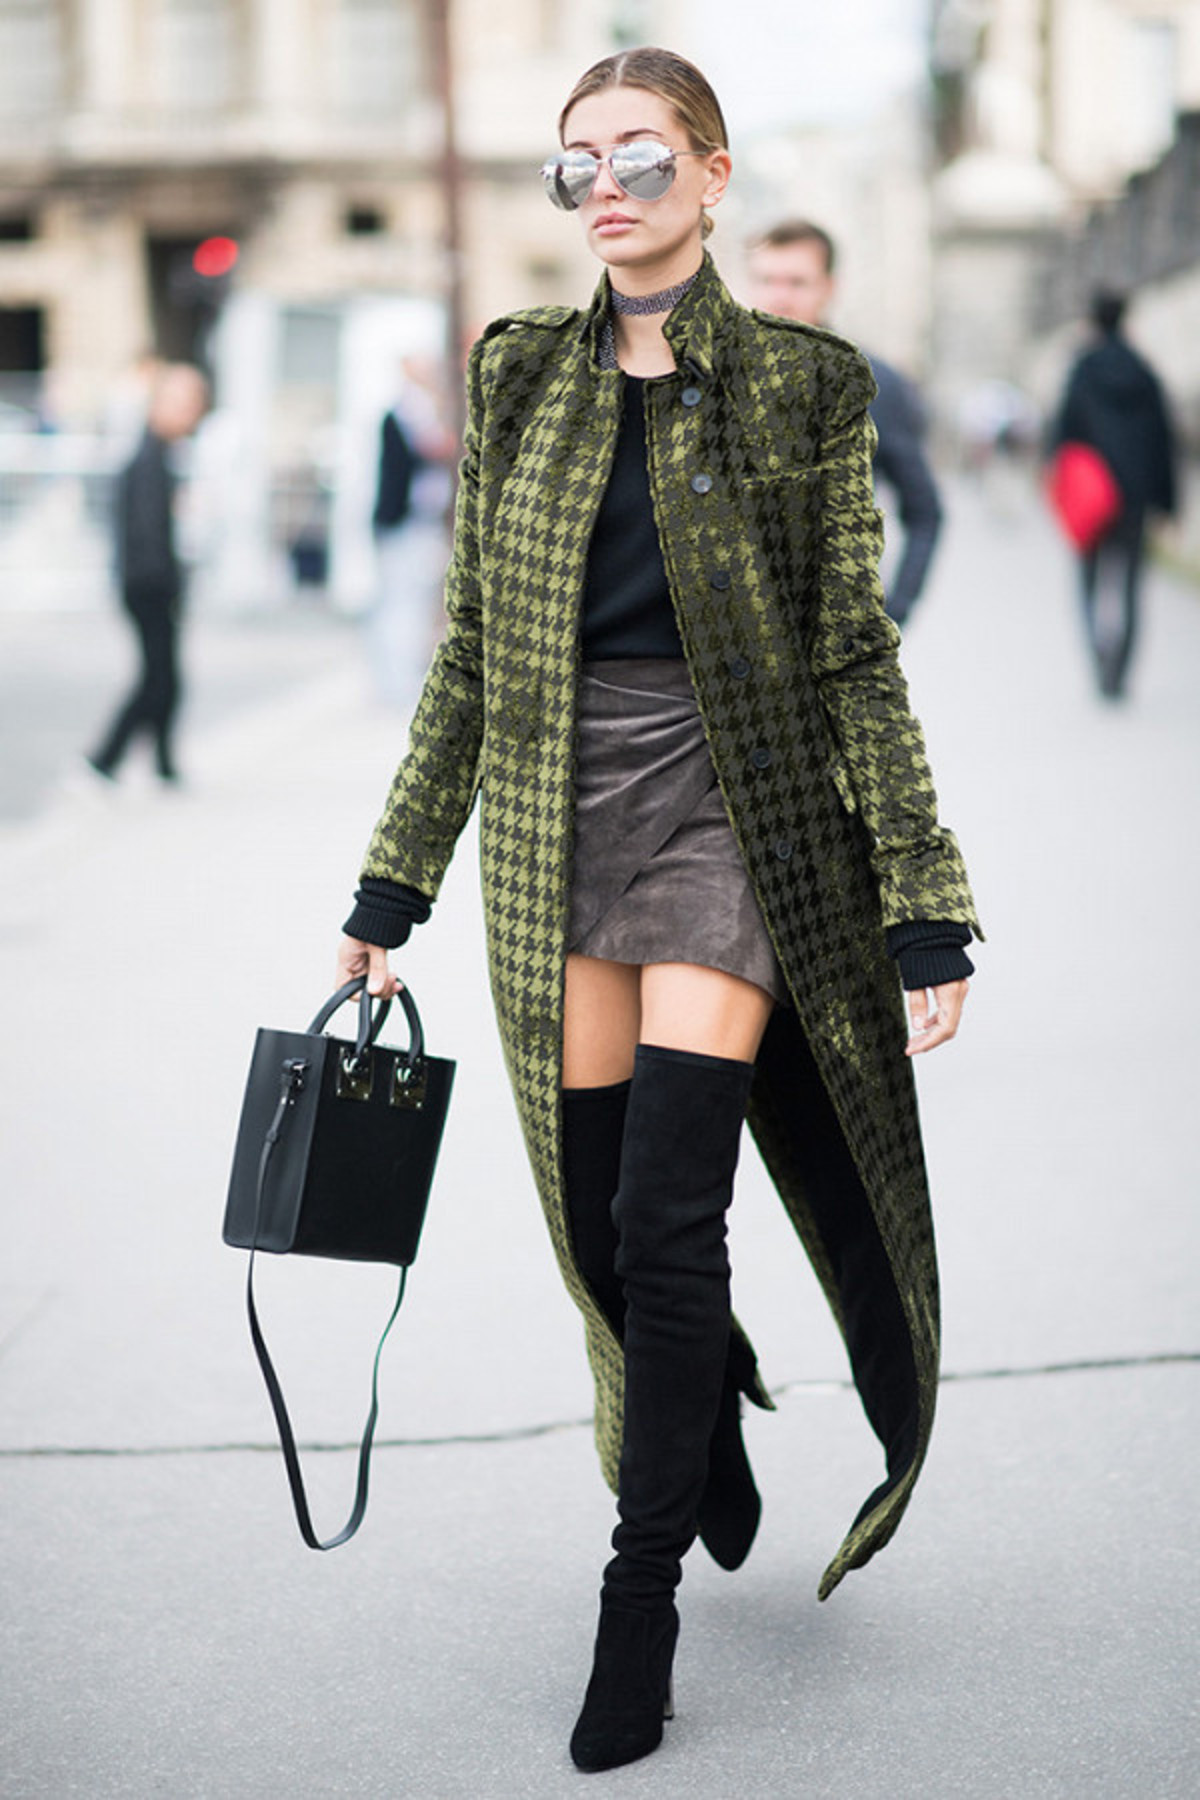 5-perfect-fall-outfit-ideasall-from-hailey-baldwin-2005498.600x0c